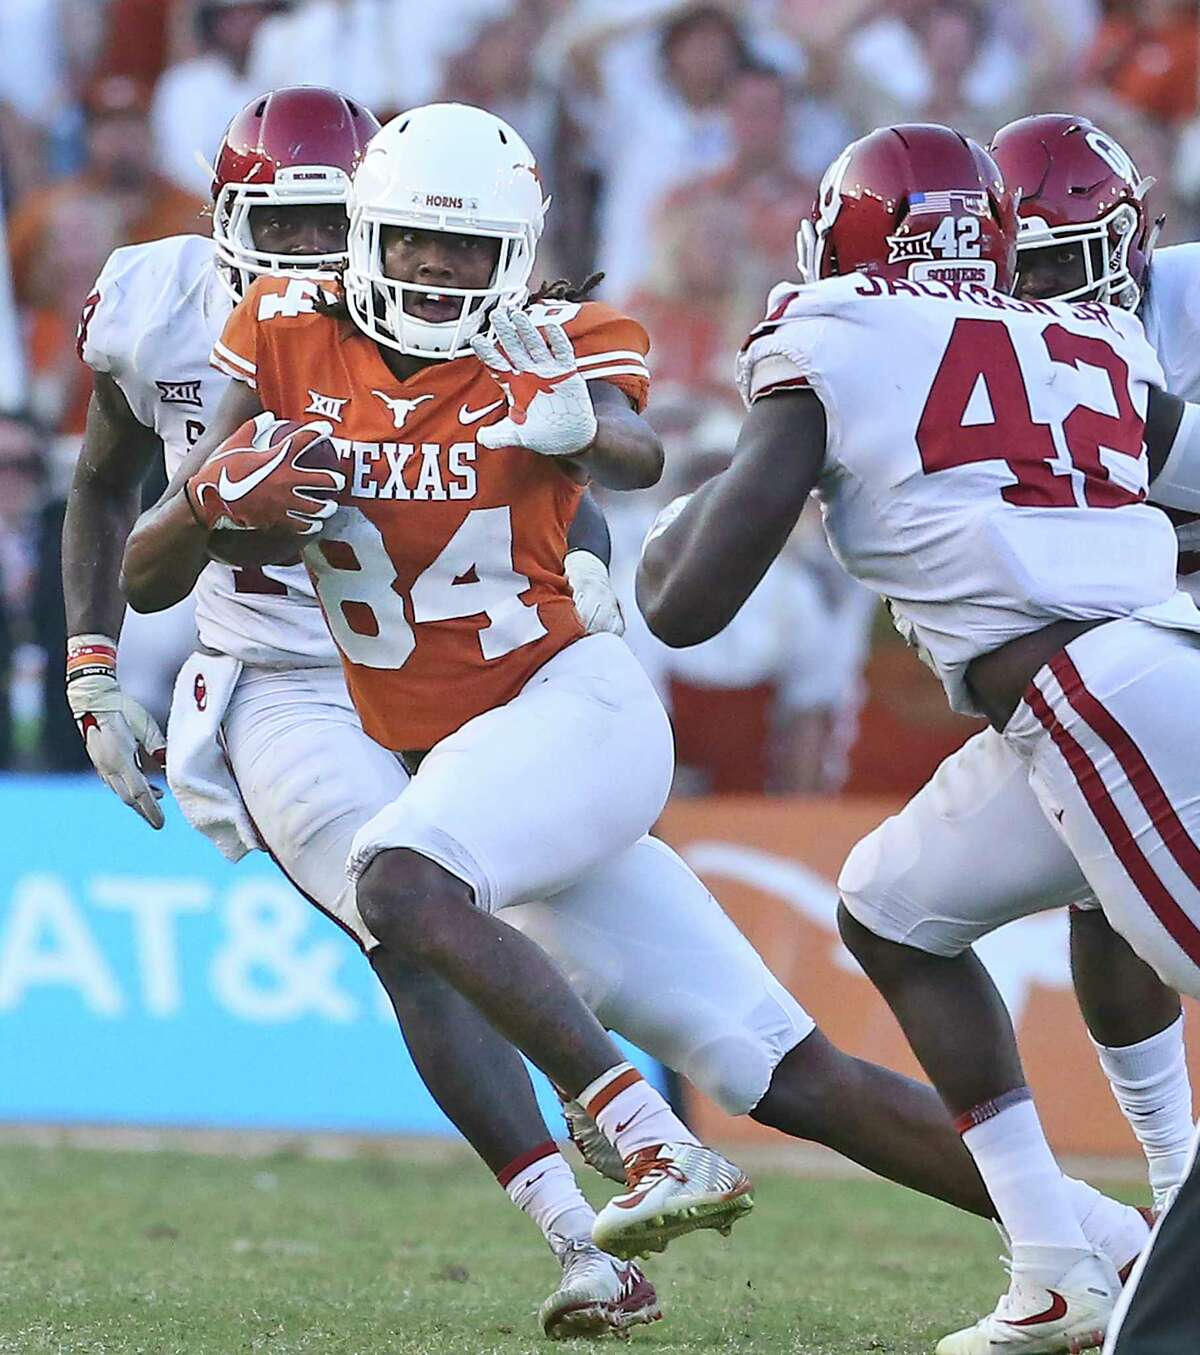 THREE KEYS FOR LONGHORNS           1. Establish offense early to show defense it won't have to do it all. 2. Find a way to pressure Mizzou quarterback Drew Lock into turnovers. 3. Take advantage of punter Michael Dickson in the field-position game.